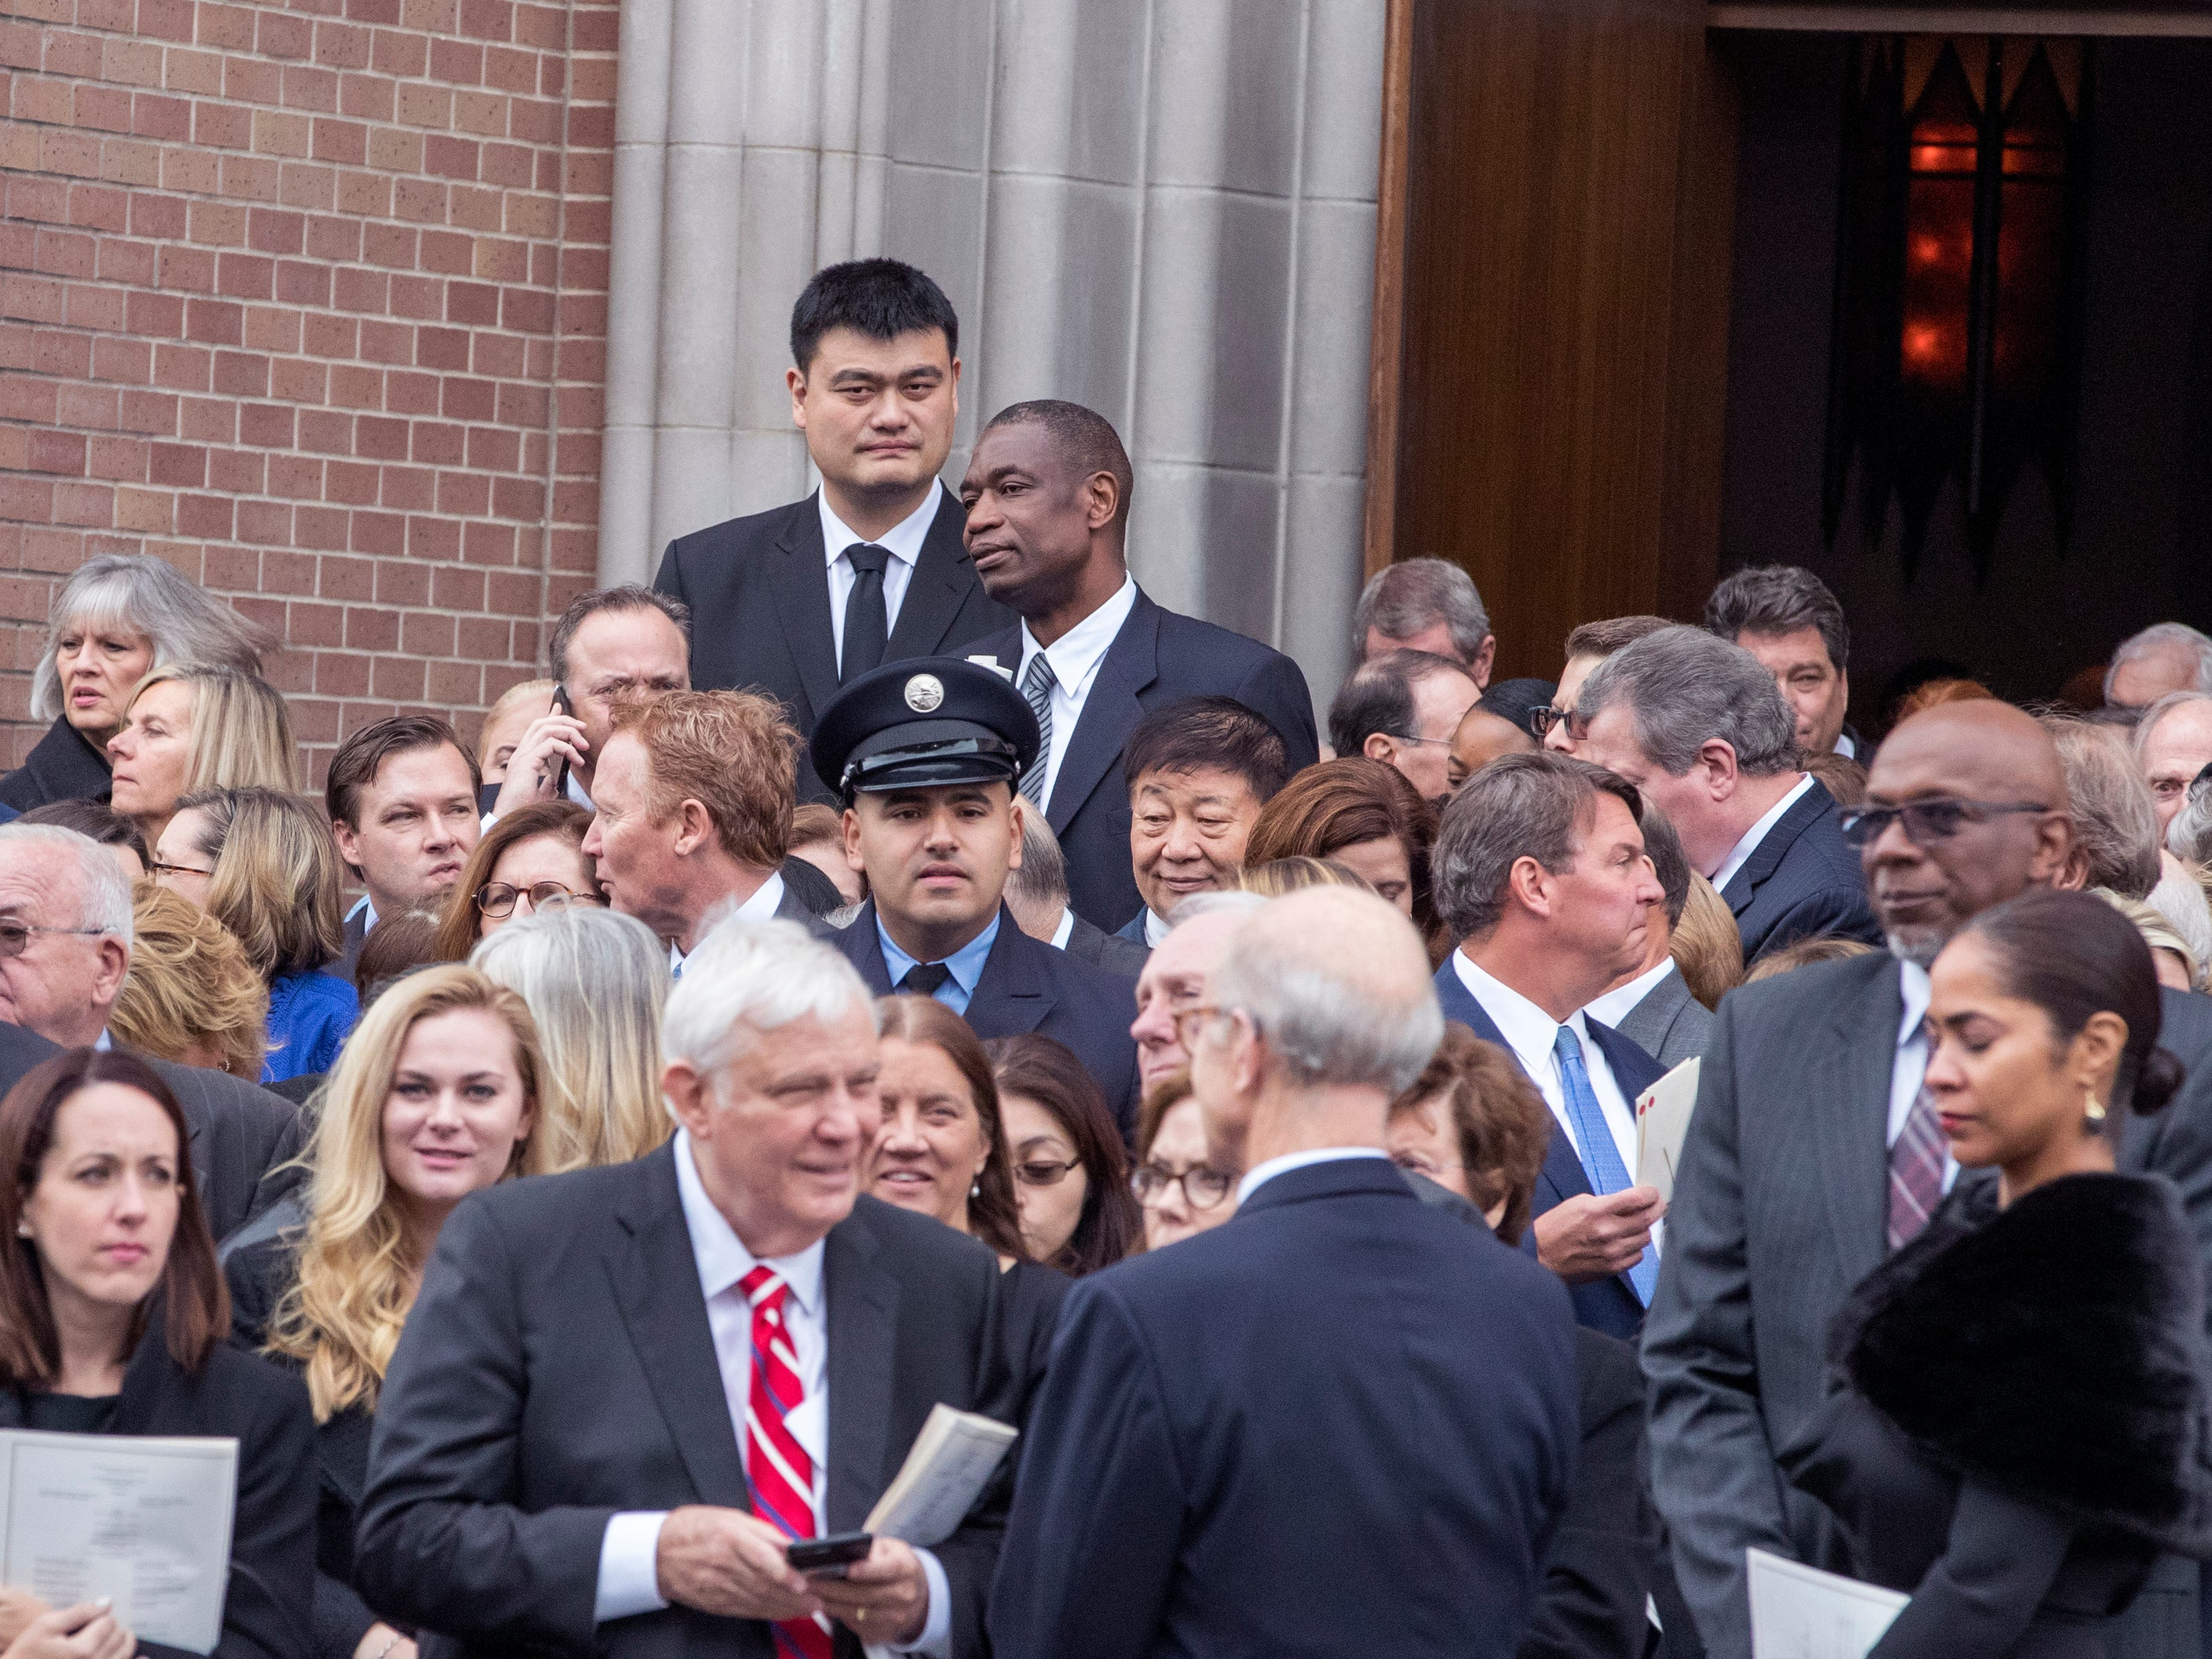 Former NBA players Yao Ming and Dikembe Mutombo (back row) attend the funeral service of former President George H.W. Bush on Thursday, Dec. 6, 2918, at St. Martin's Episcopal Church in Houston.